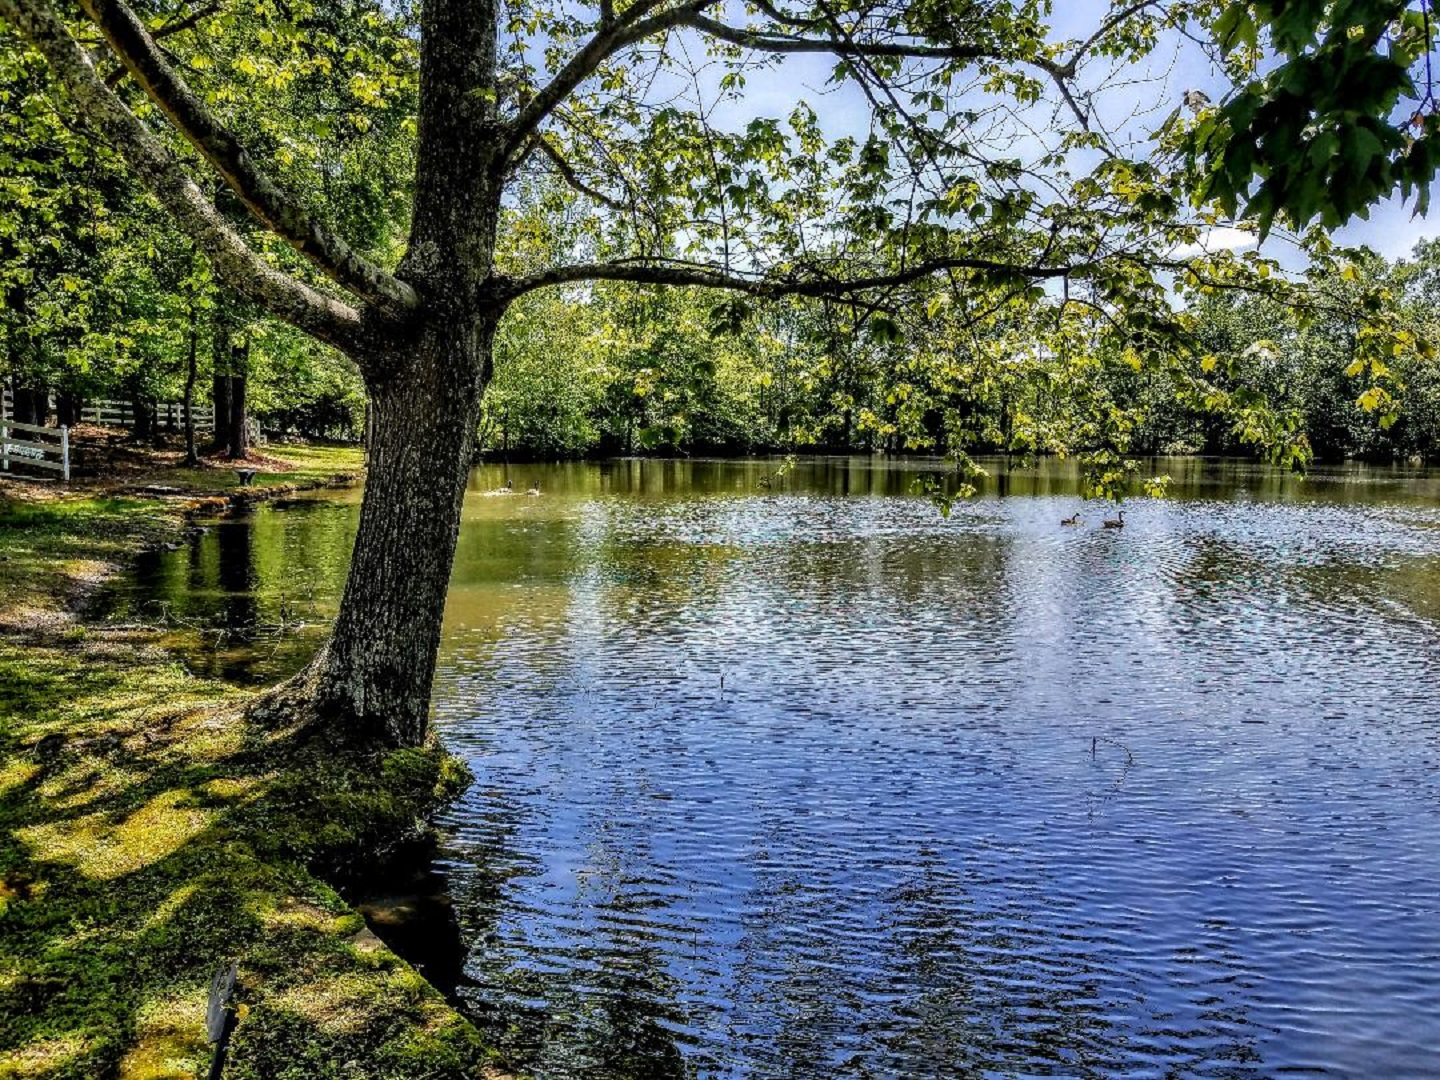 A body of water surrounded by trees at Stockbridge Lakes Bed & Breakfast.